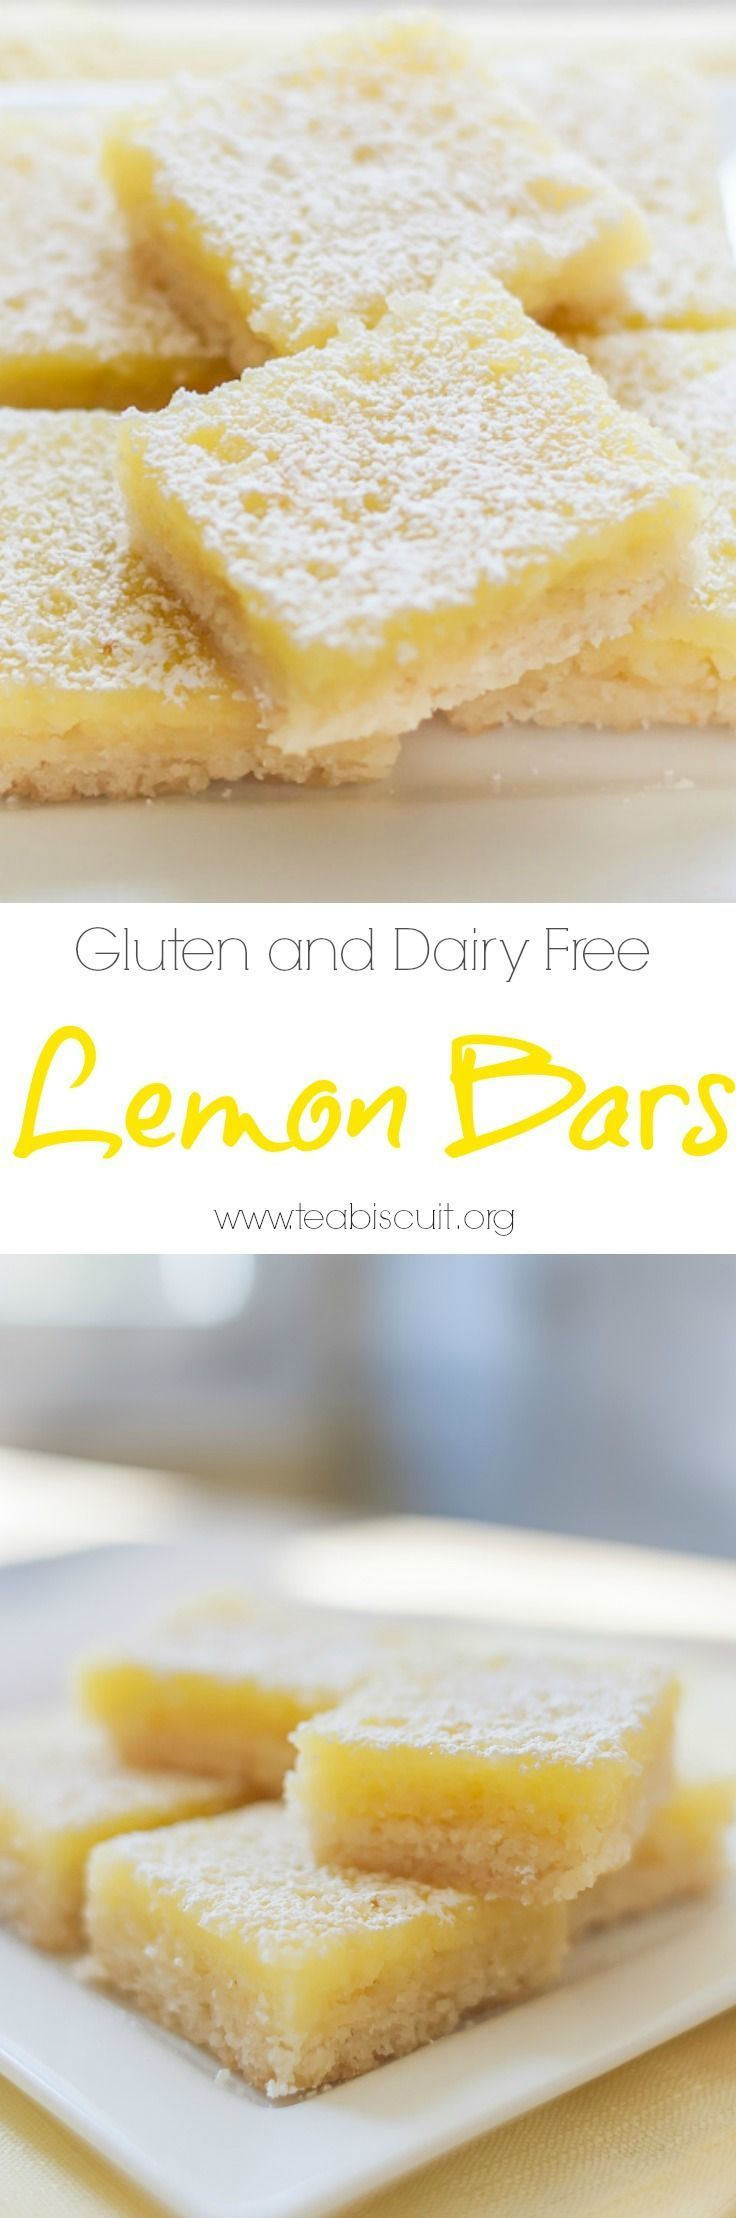 Gluten and Dairy Free Lemon Bars with the best shortbread base ever!  visit teabiscuit.org for more gluten free recipes